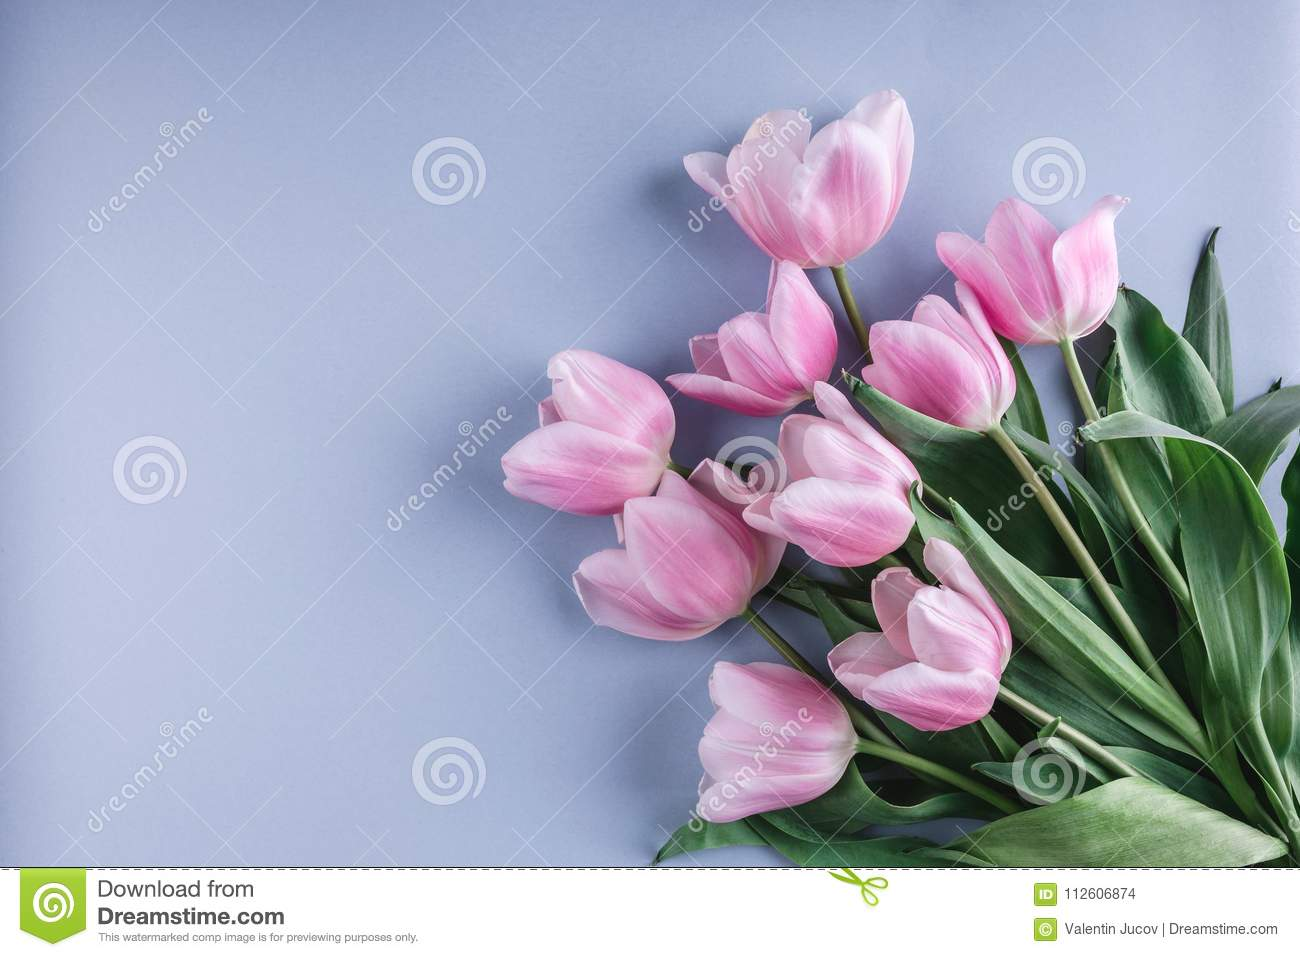 Bunch of pink tulip flowers on blue background. Waiting for spring. Happy Easter card.